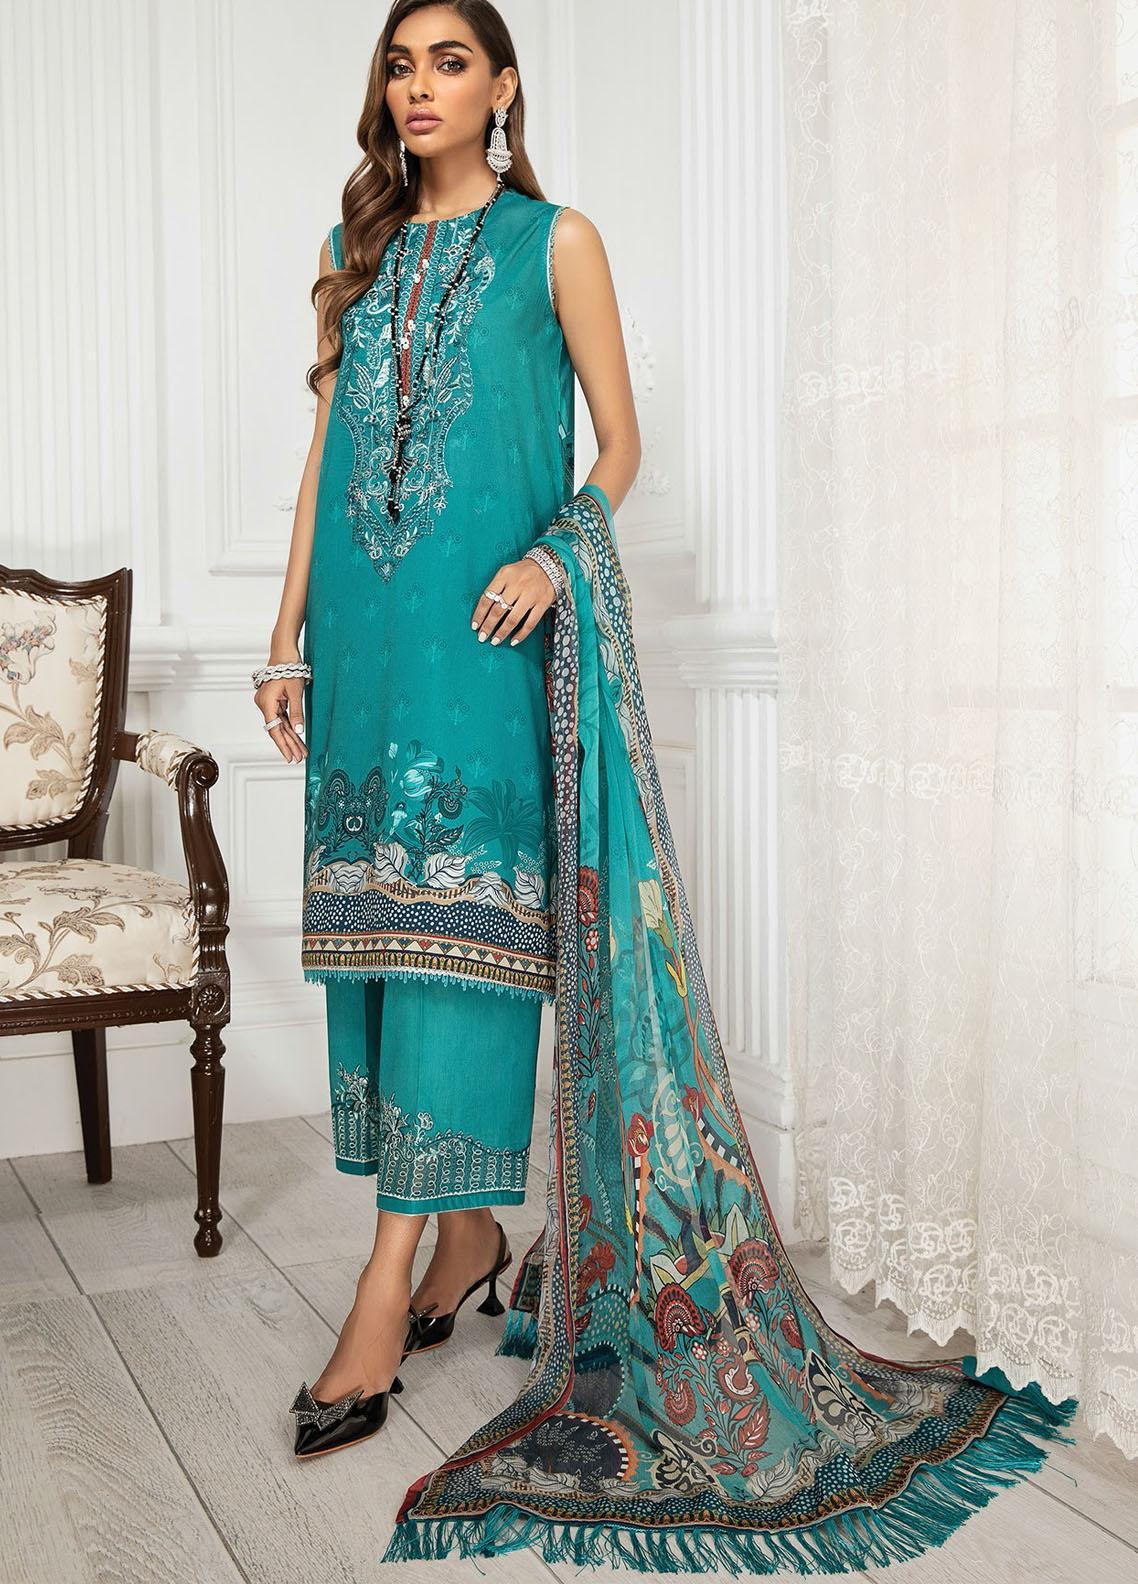 Farasha Embroidered Lawn Suits Unstitched 3 Piece FSH21-L3 03 Crown Jewel - Festive Collection